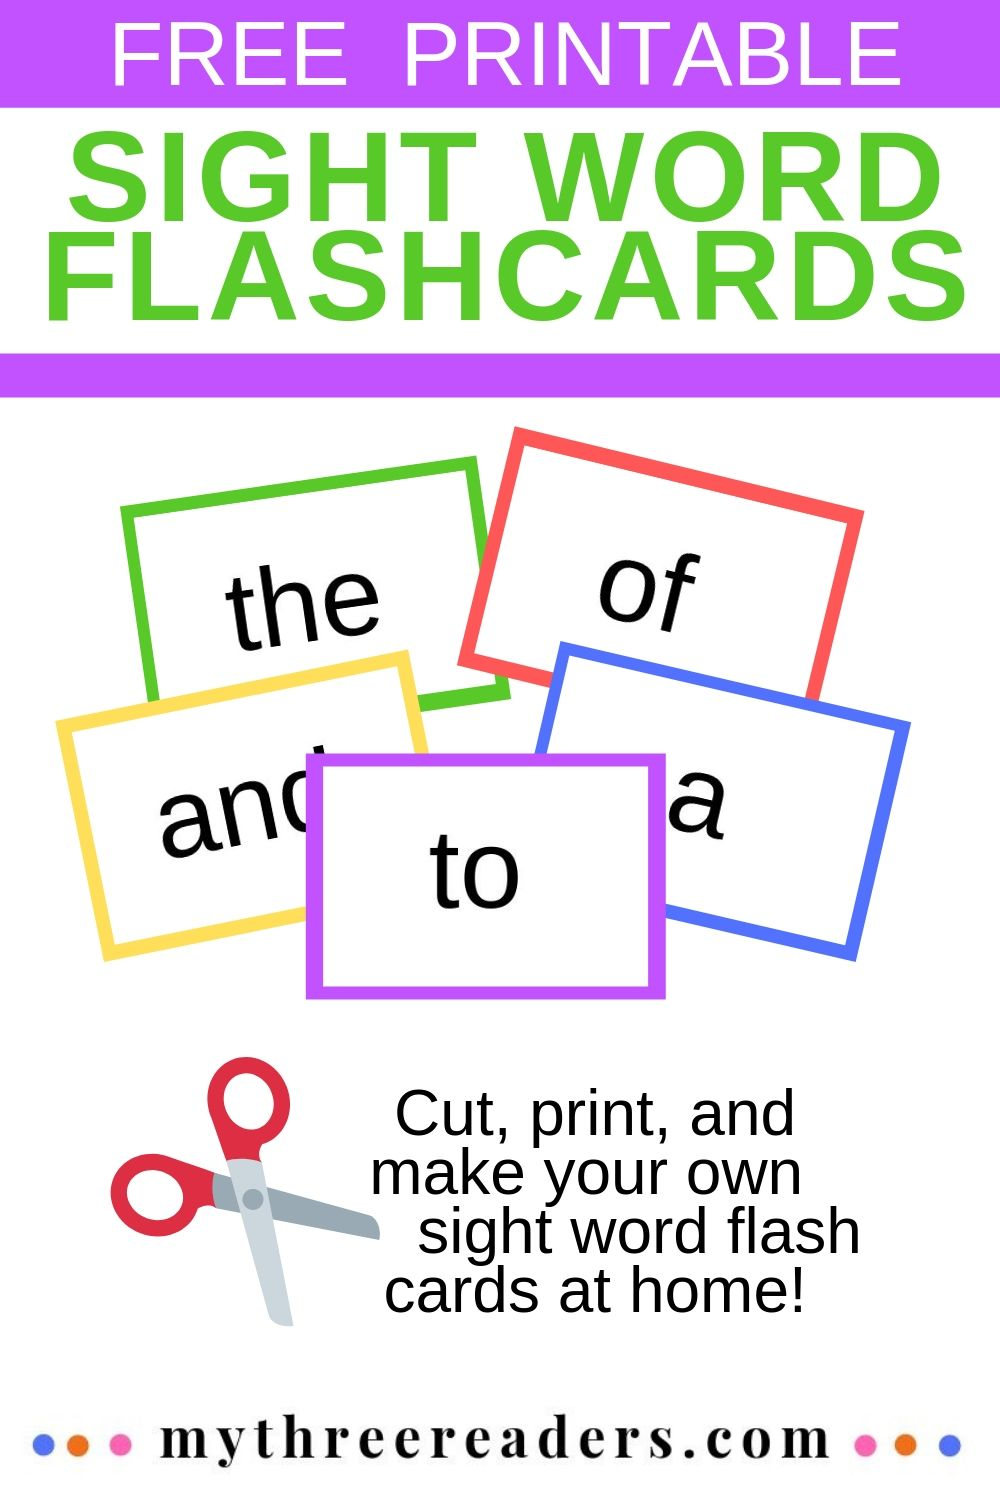 image about Printable Sight Word titled Deliver Your Particular Sight Phrase Flash Playing cards - Free of charge, Printable for Your self!